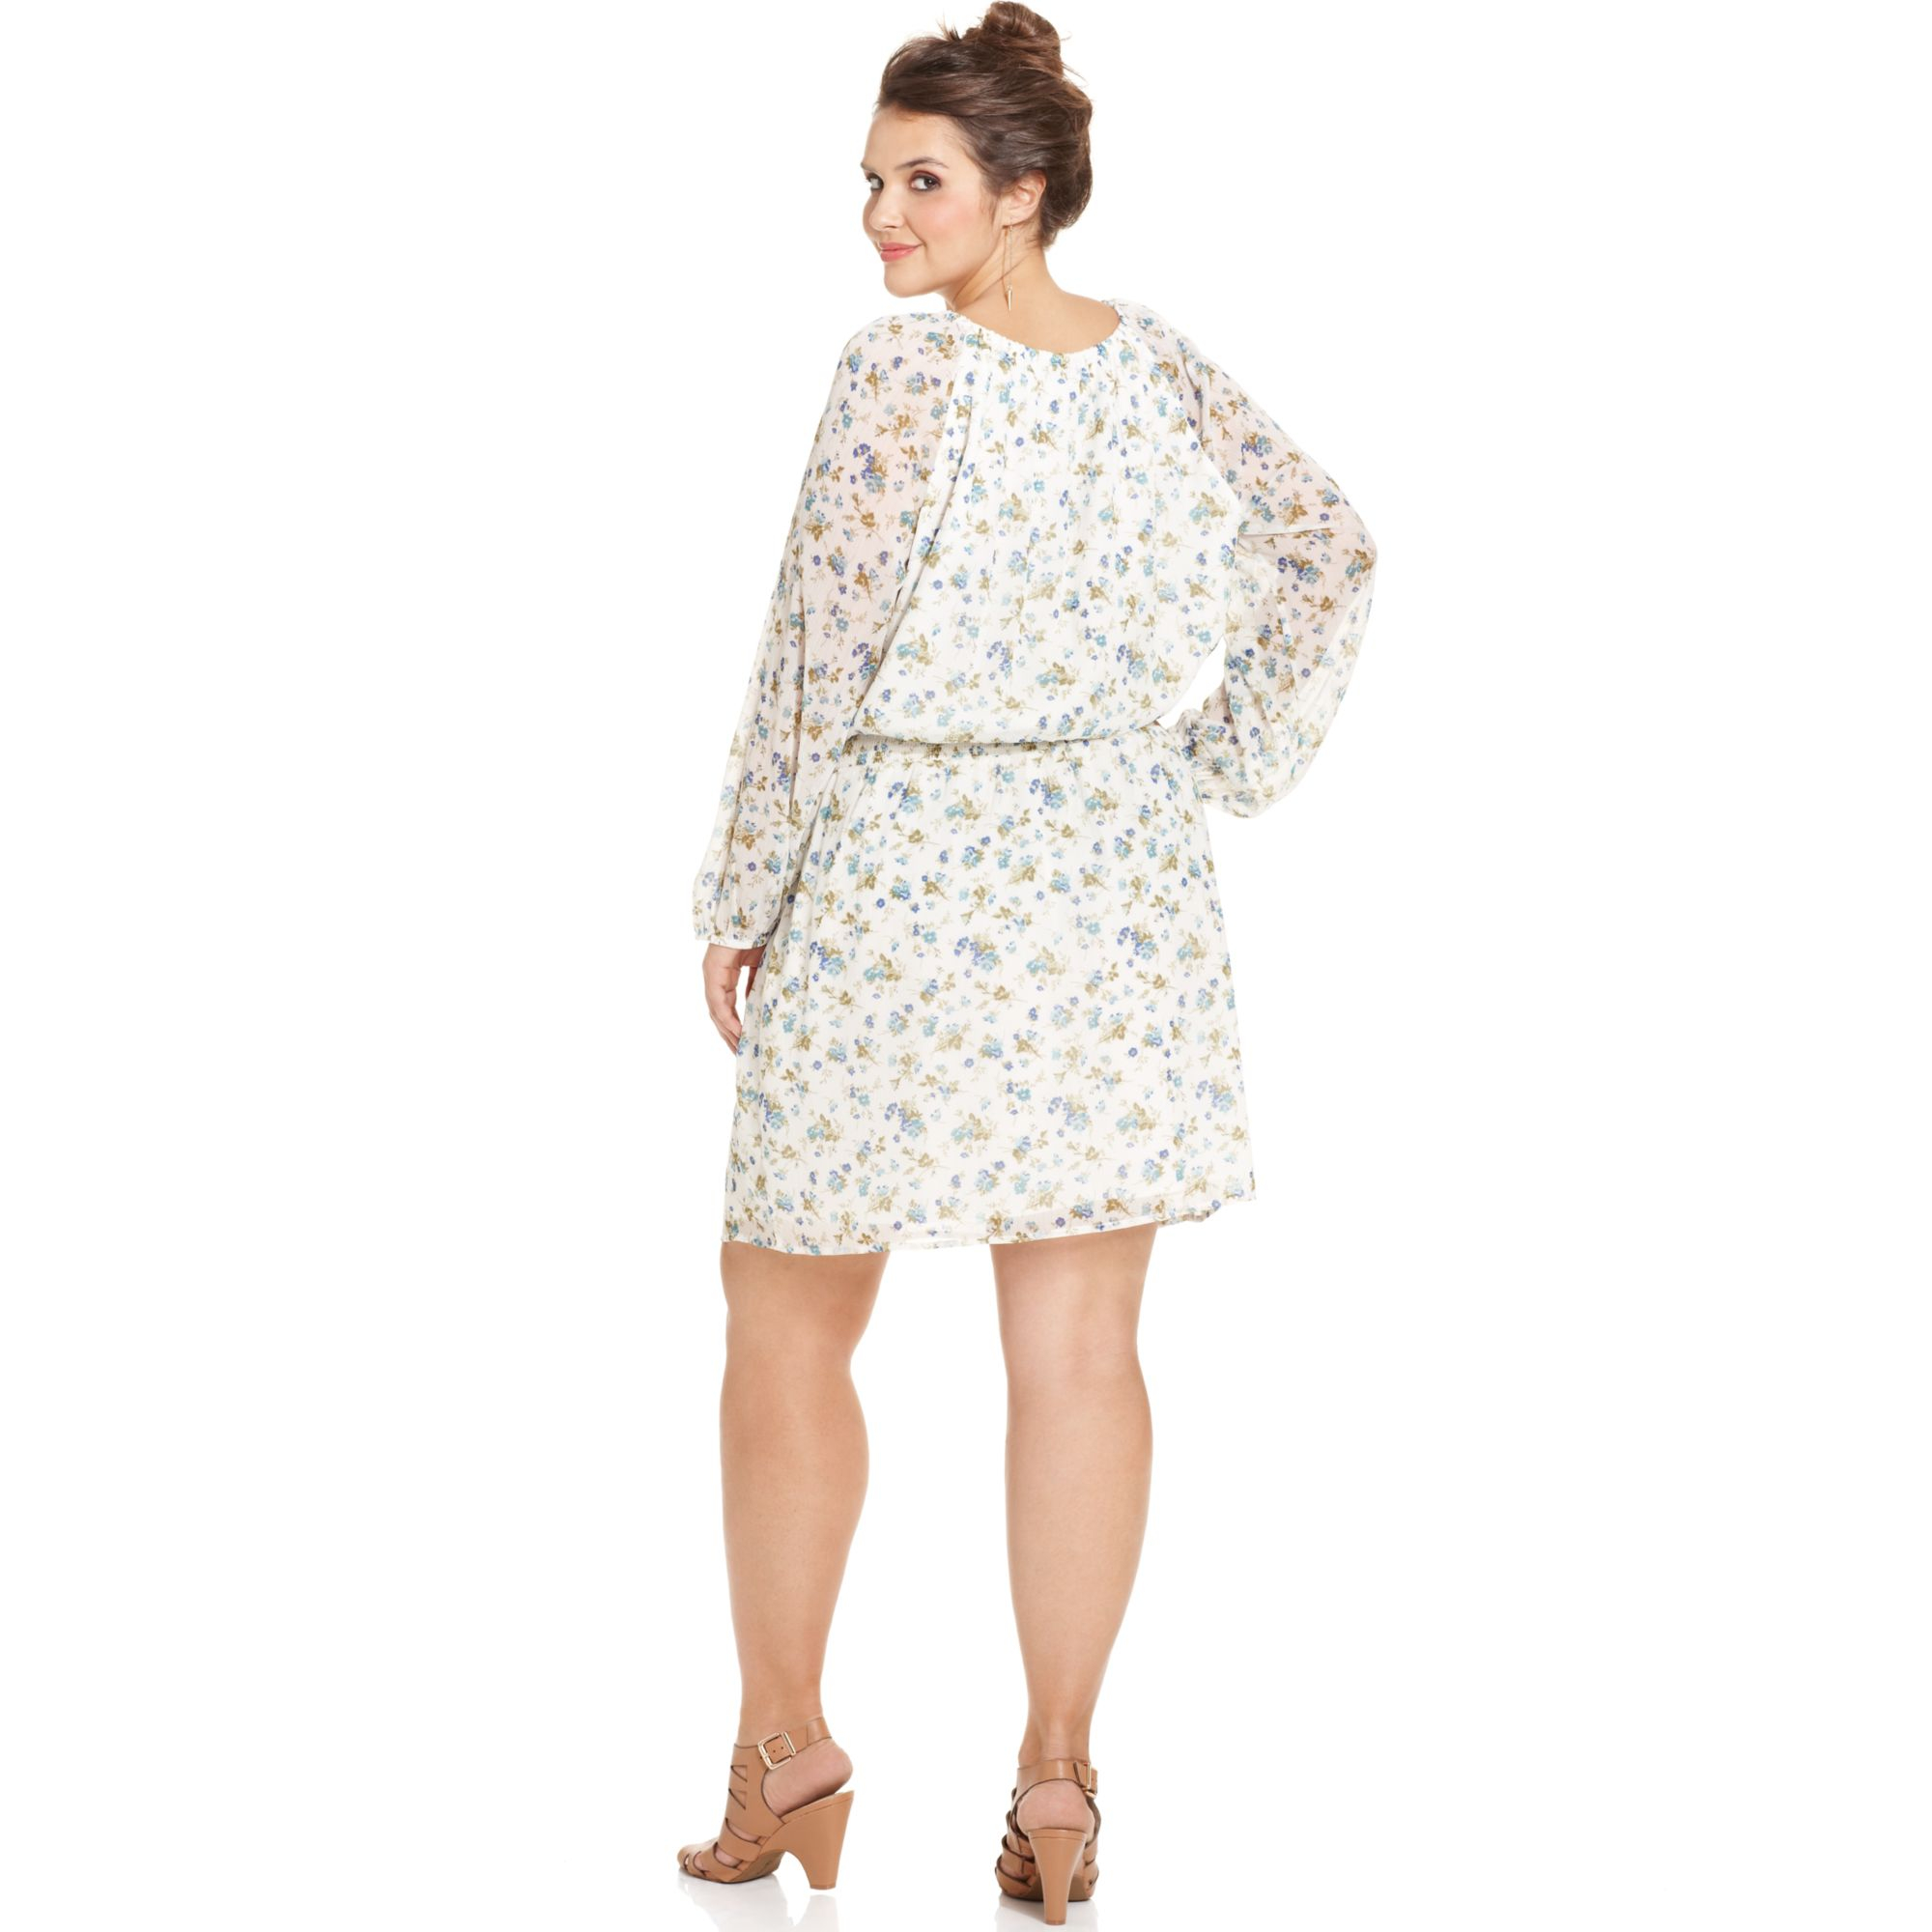 Jessica simpson Plus Size Floralprint Peasant Dress in White | Lyst